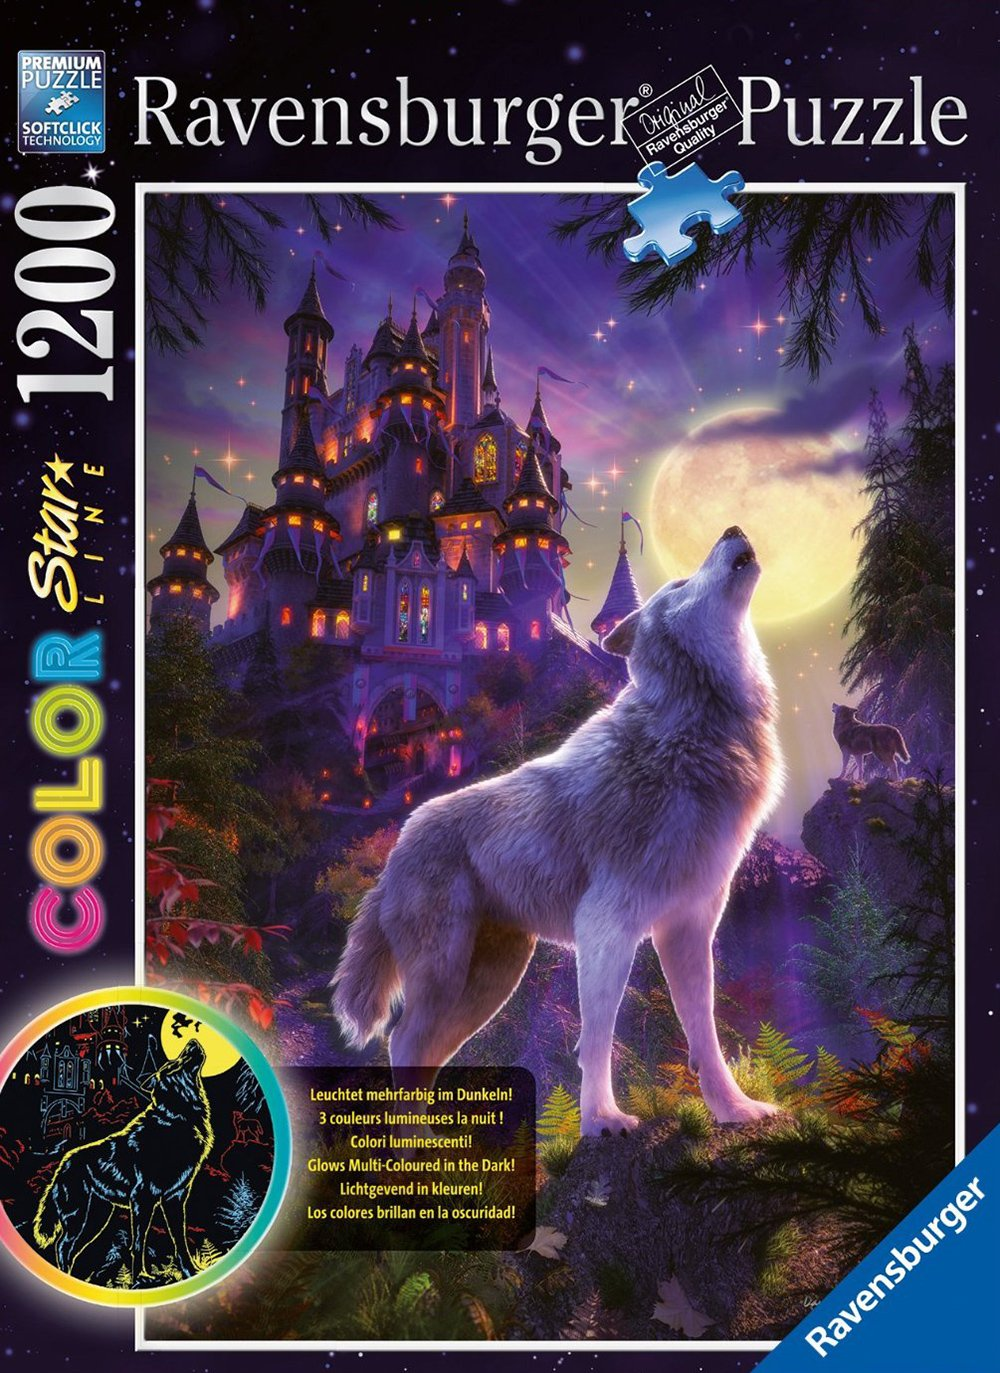 Ravesburger JigsawPuzzle 1200 pieces Color Starline puzzle DavidPenfound beautiful colors 161867 moo moon-wolf